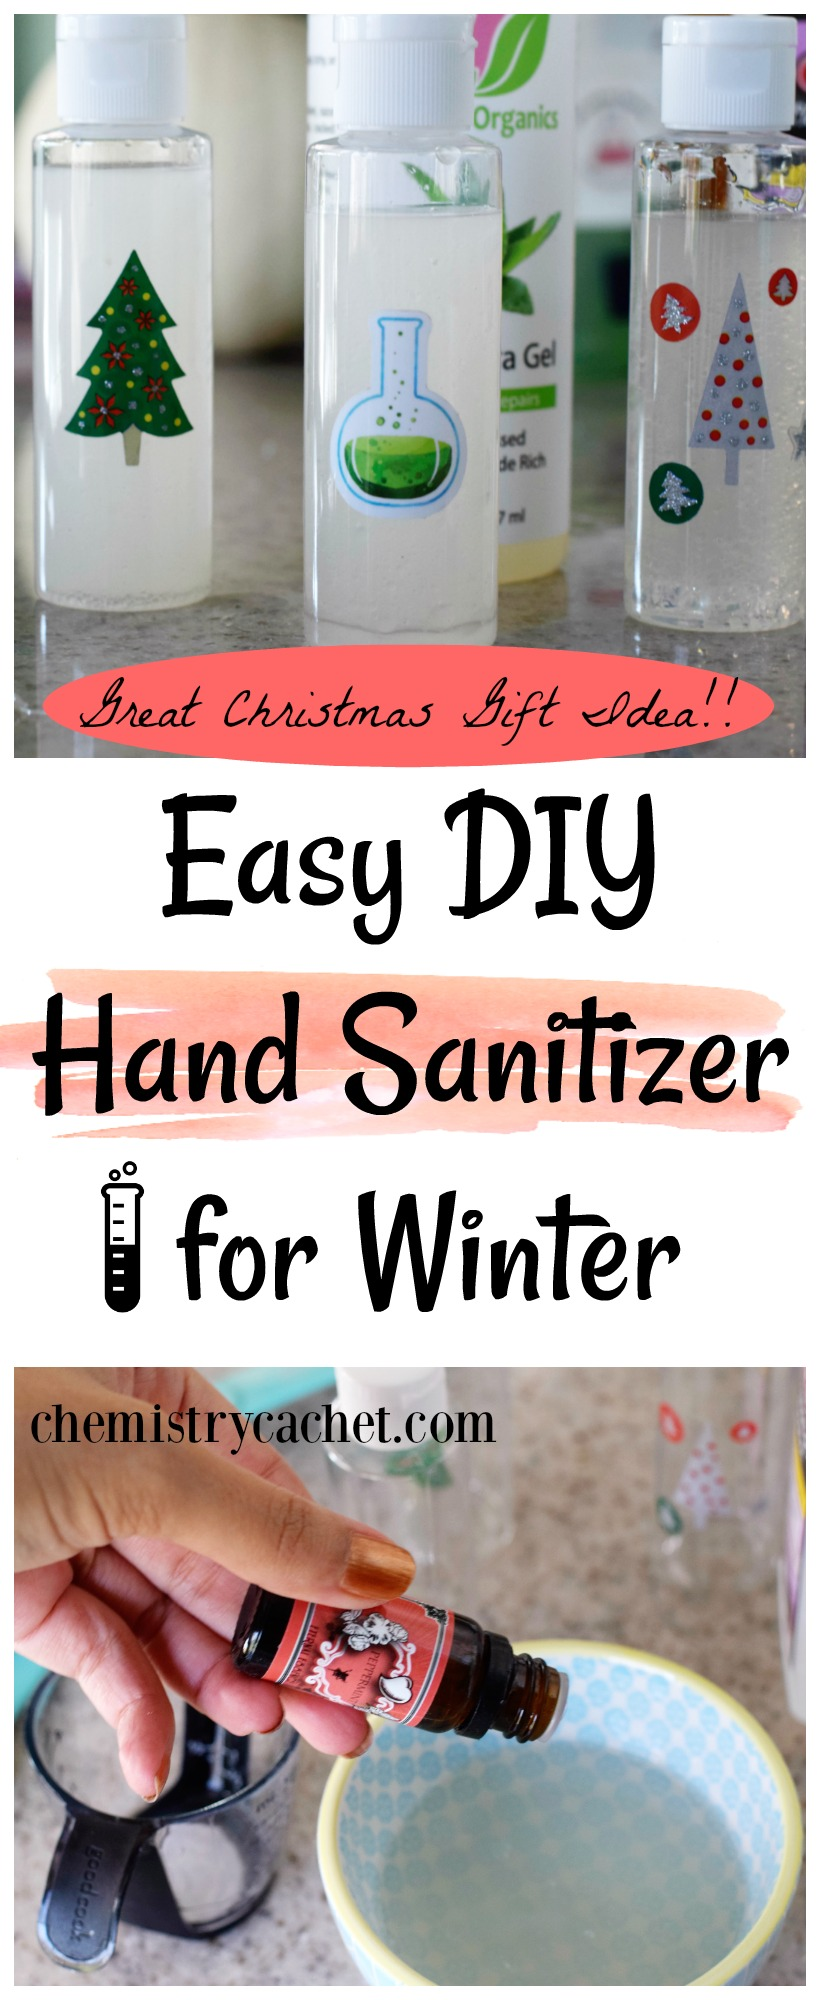 Easy DIY Hand Sanitizer for Winter (Great Christmas Gift Idea!) on chemistrycachet.com #handsanitizer #DIY #natural